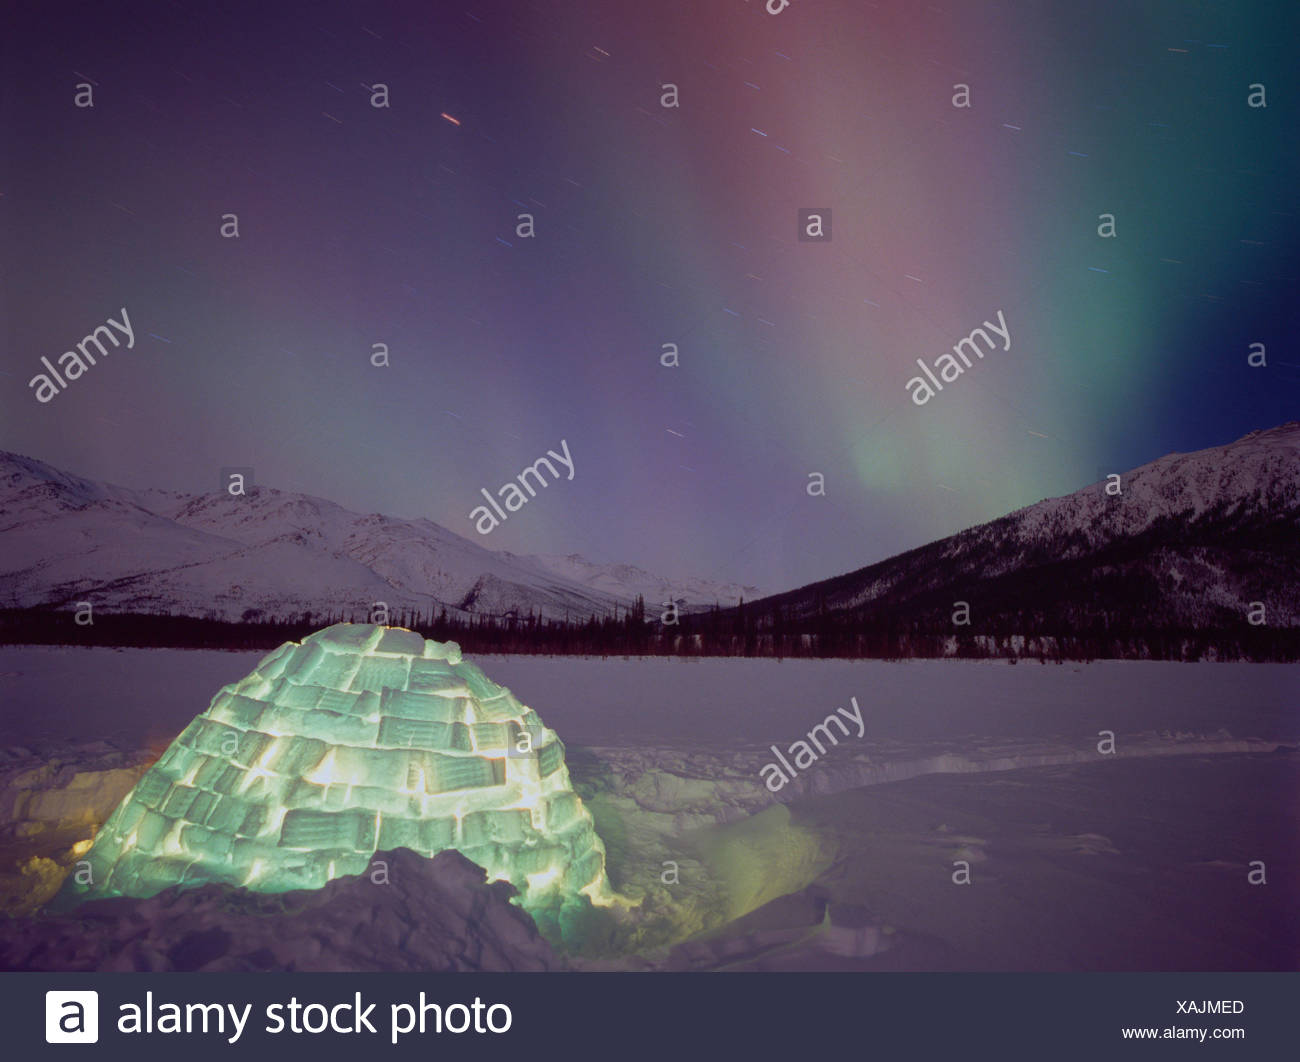 Celestial lights over an igloo in Alaska - Stock Image